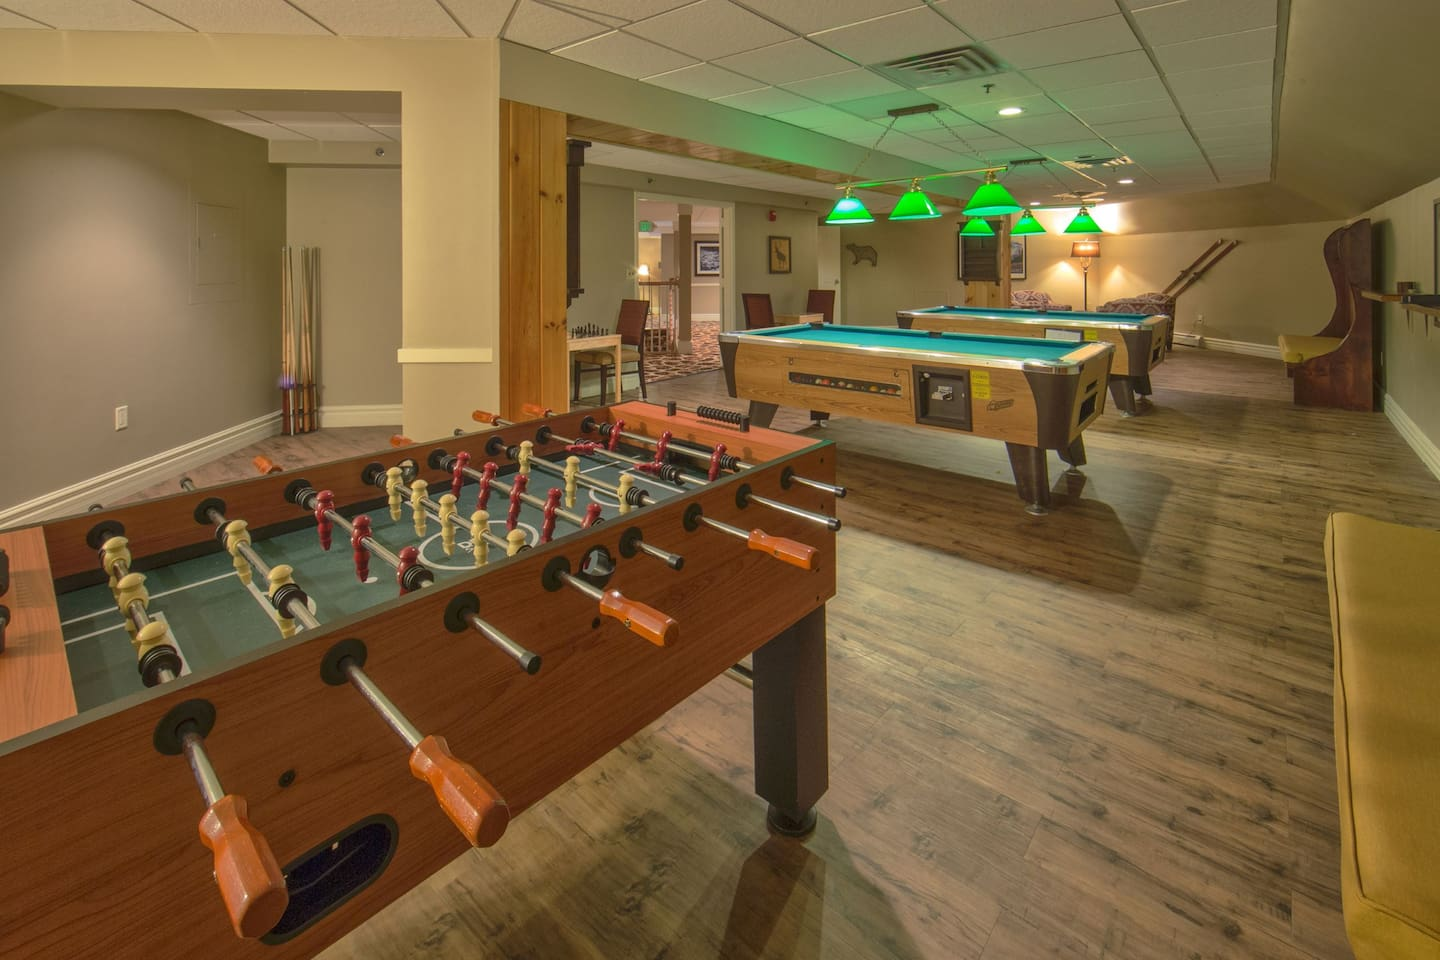 If the kids have had enough of the pool, take them to the shared games room.